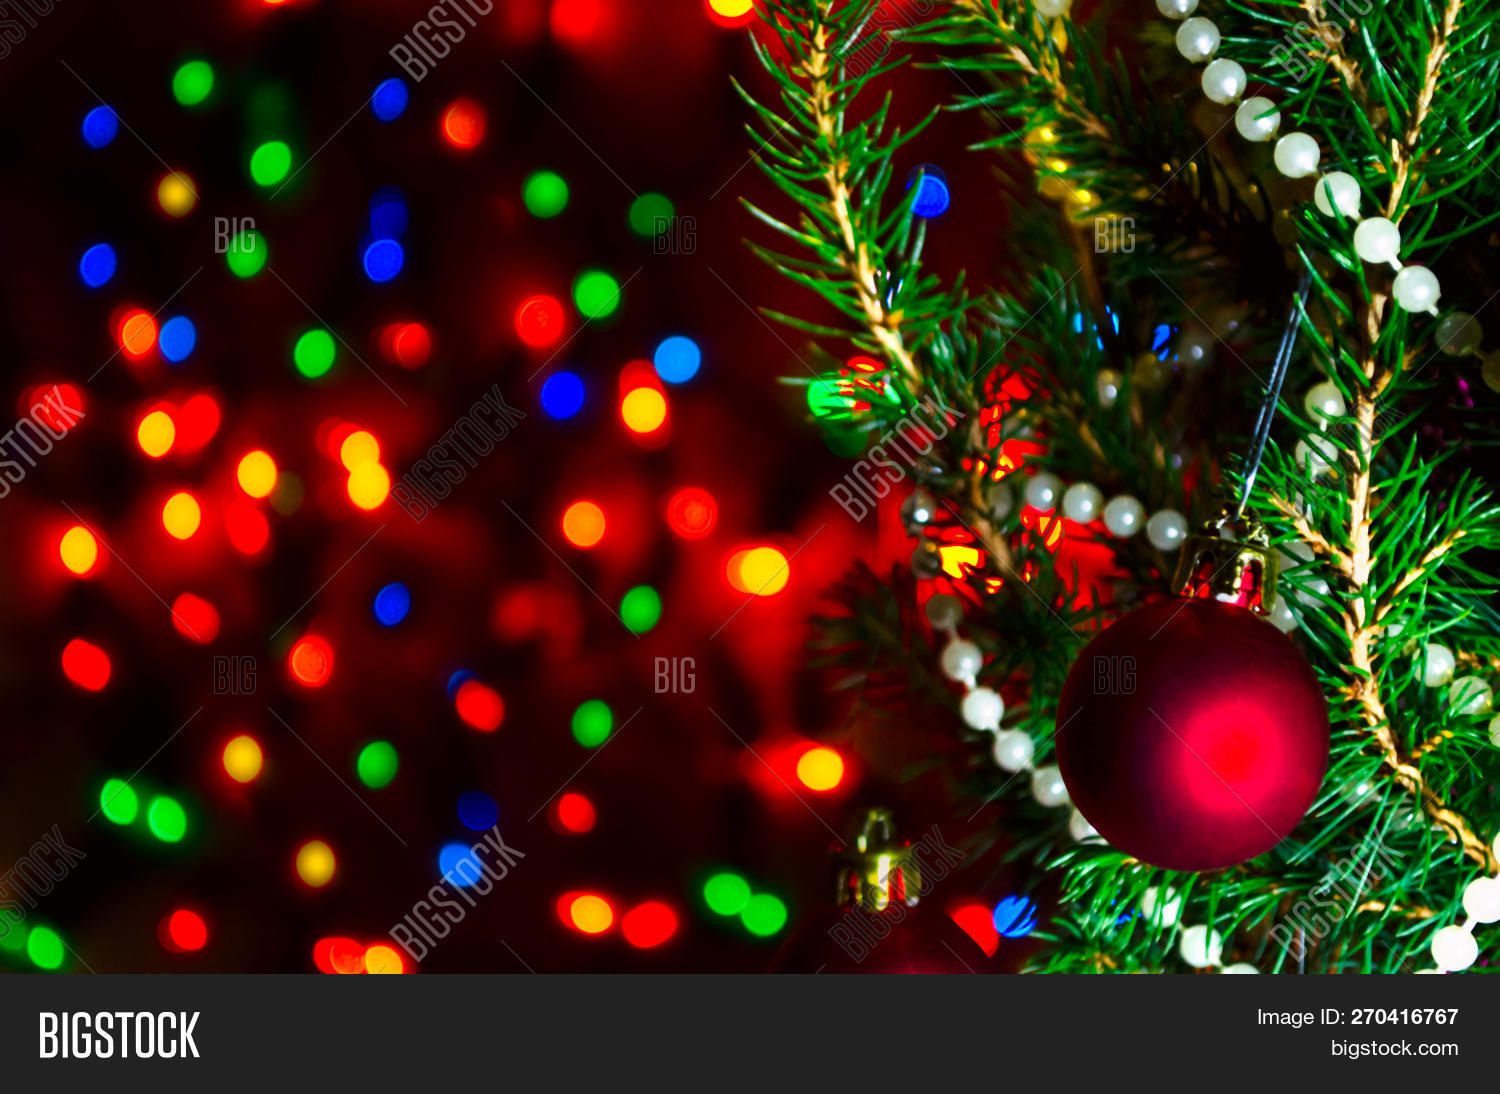 Red Christmas Ball On Image Photo Free Trial Bigstock